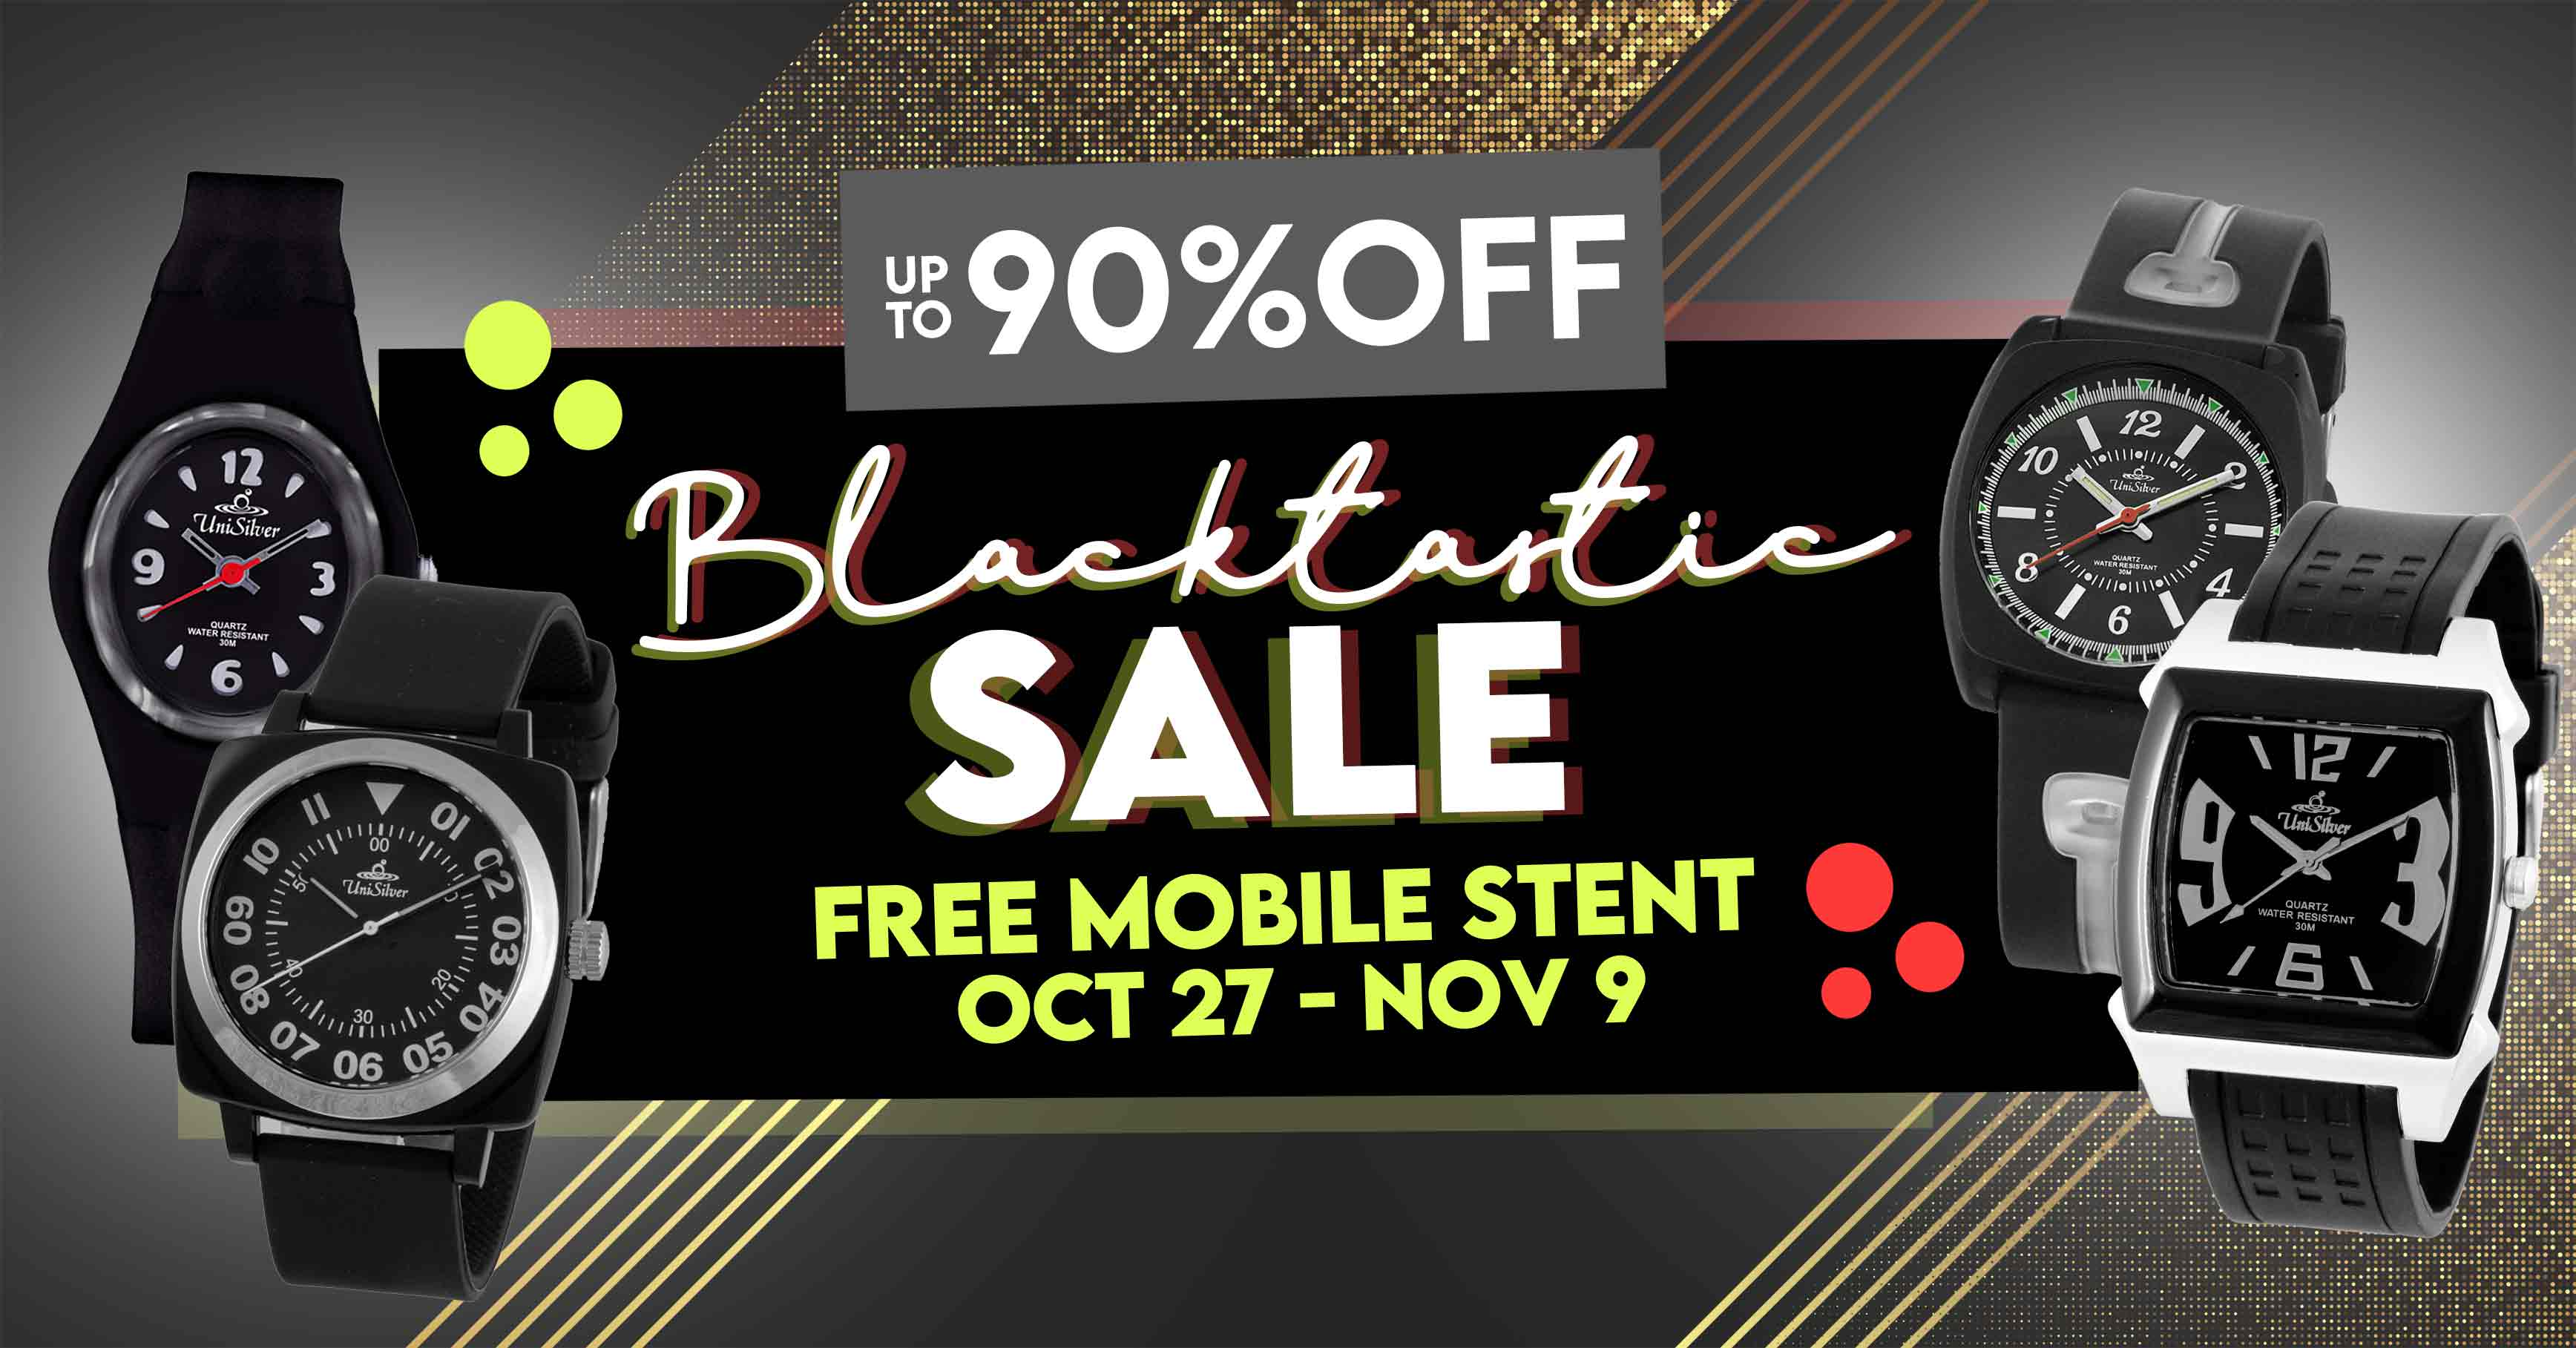 It's time to wear the boldest color with the Blacktastic Sale from UniSilver TIME!  Get up to 90% off on black watches from October 28 to November 9, 2020.  Free shipping and cash on delivery option is available.  This promo is only available online.  Hurry and order now >>> http://bit.ly/2YCgEZj